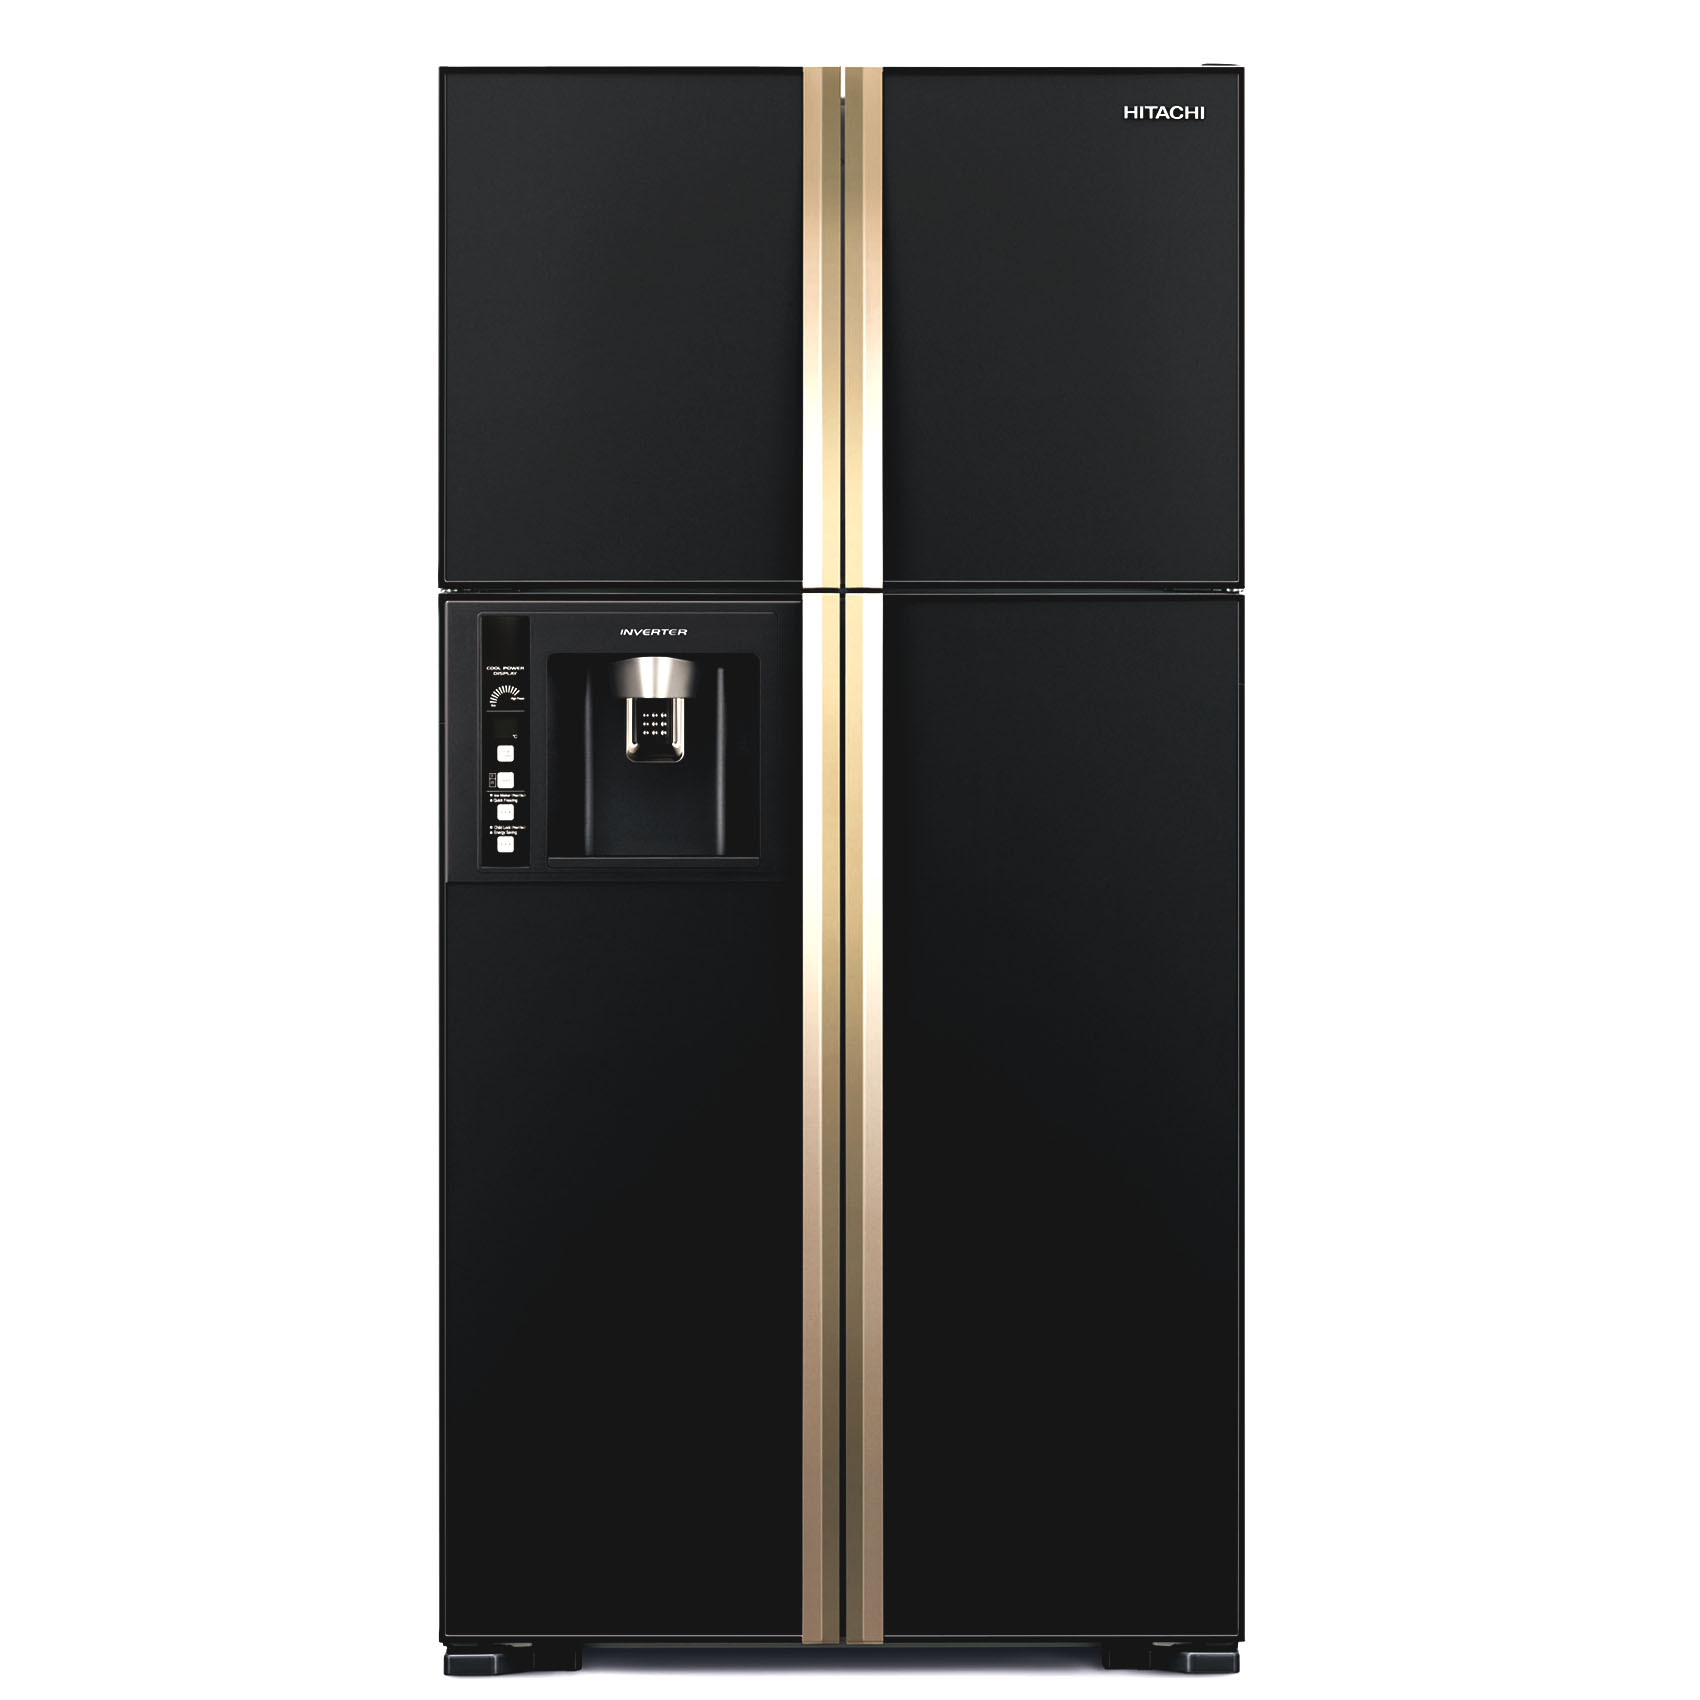 HITACHI FRIDGE SBS RW660PUK3GBK